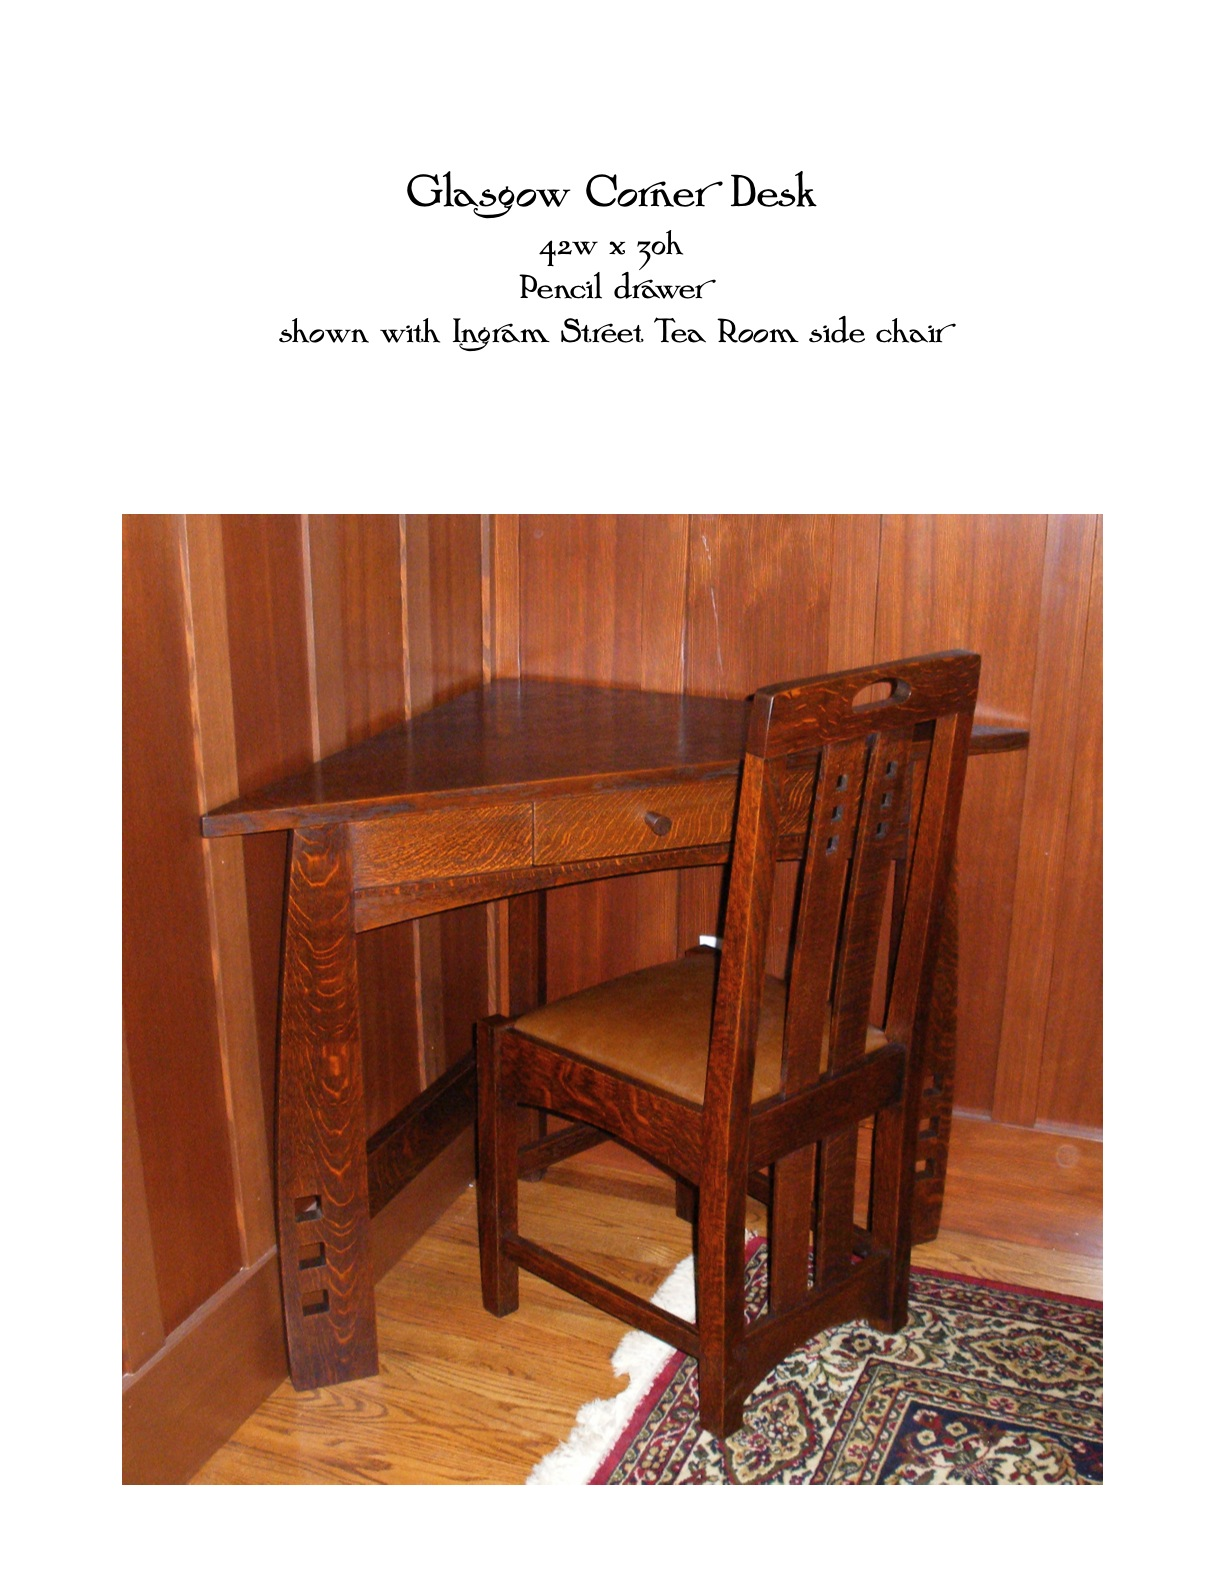 Glasgow Corner Desk Mike Devlin Furniture Design